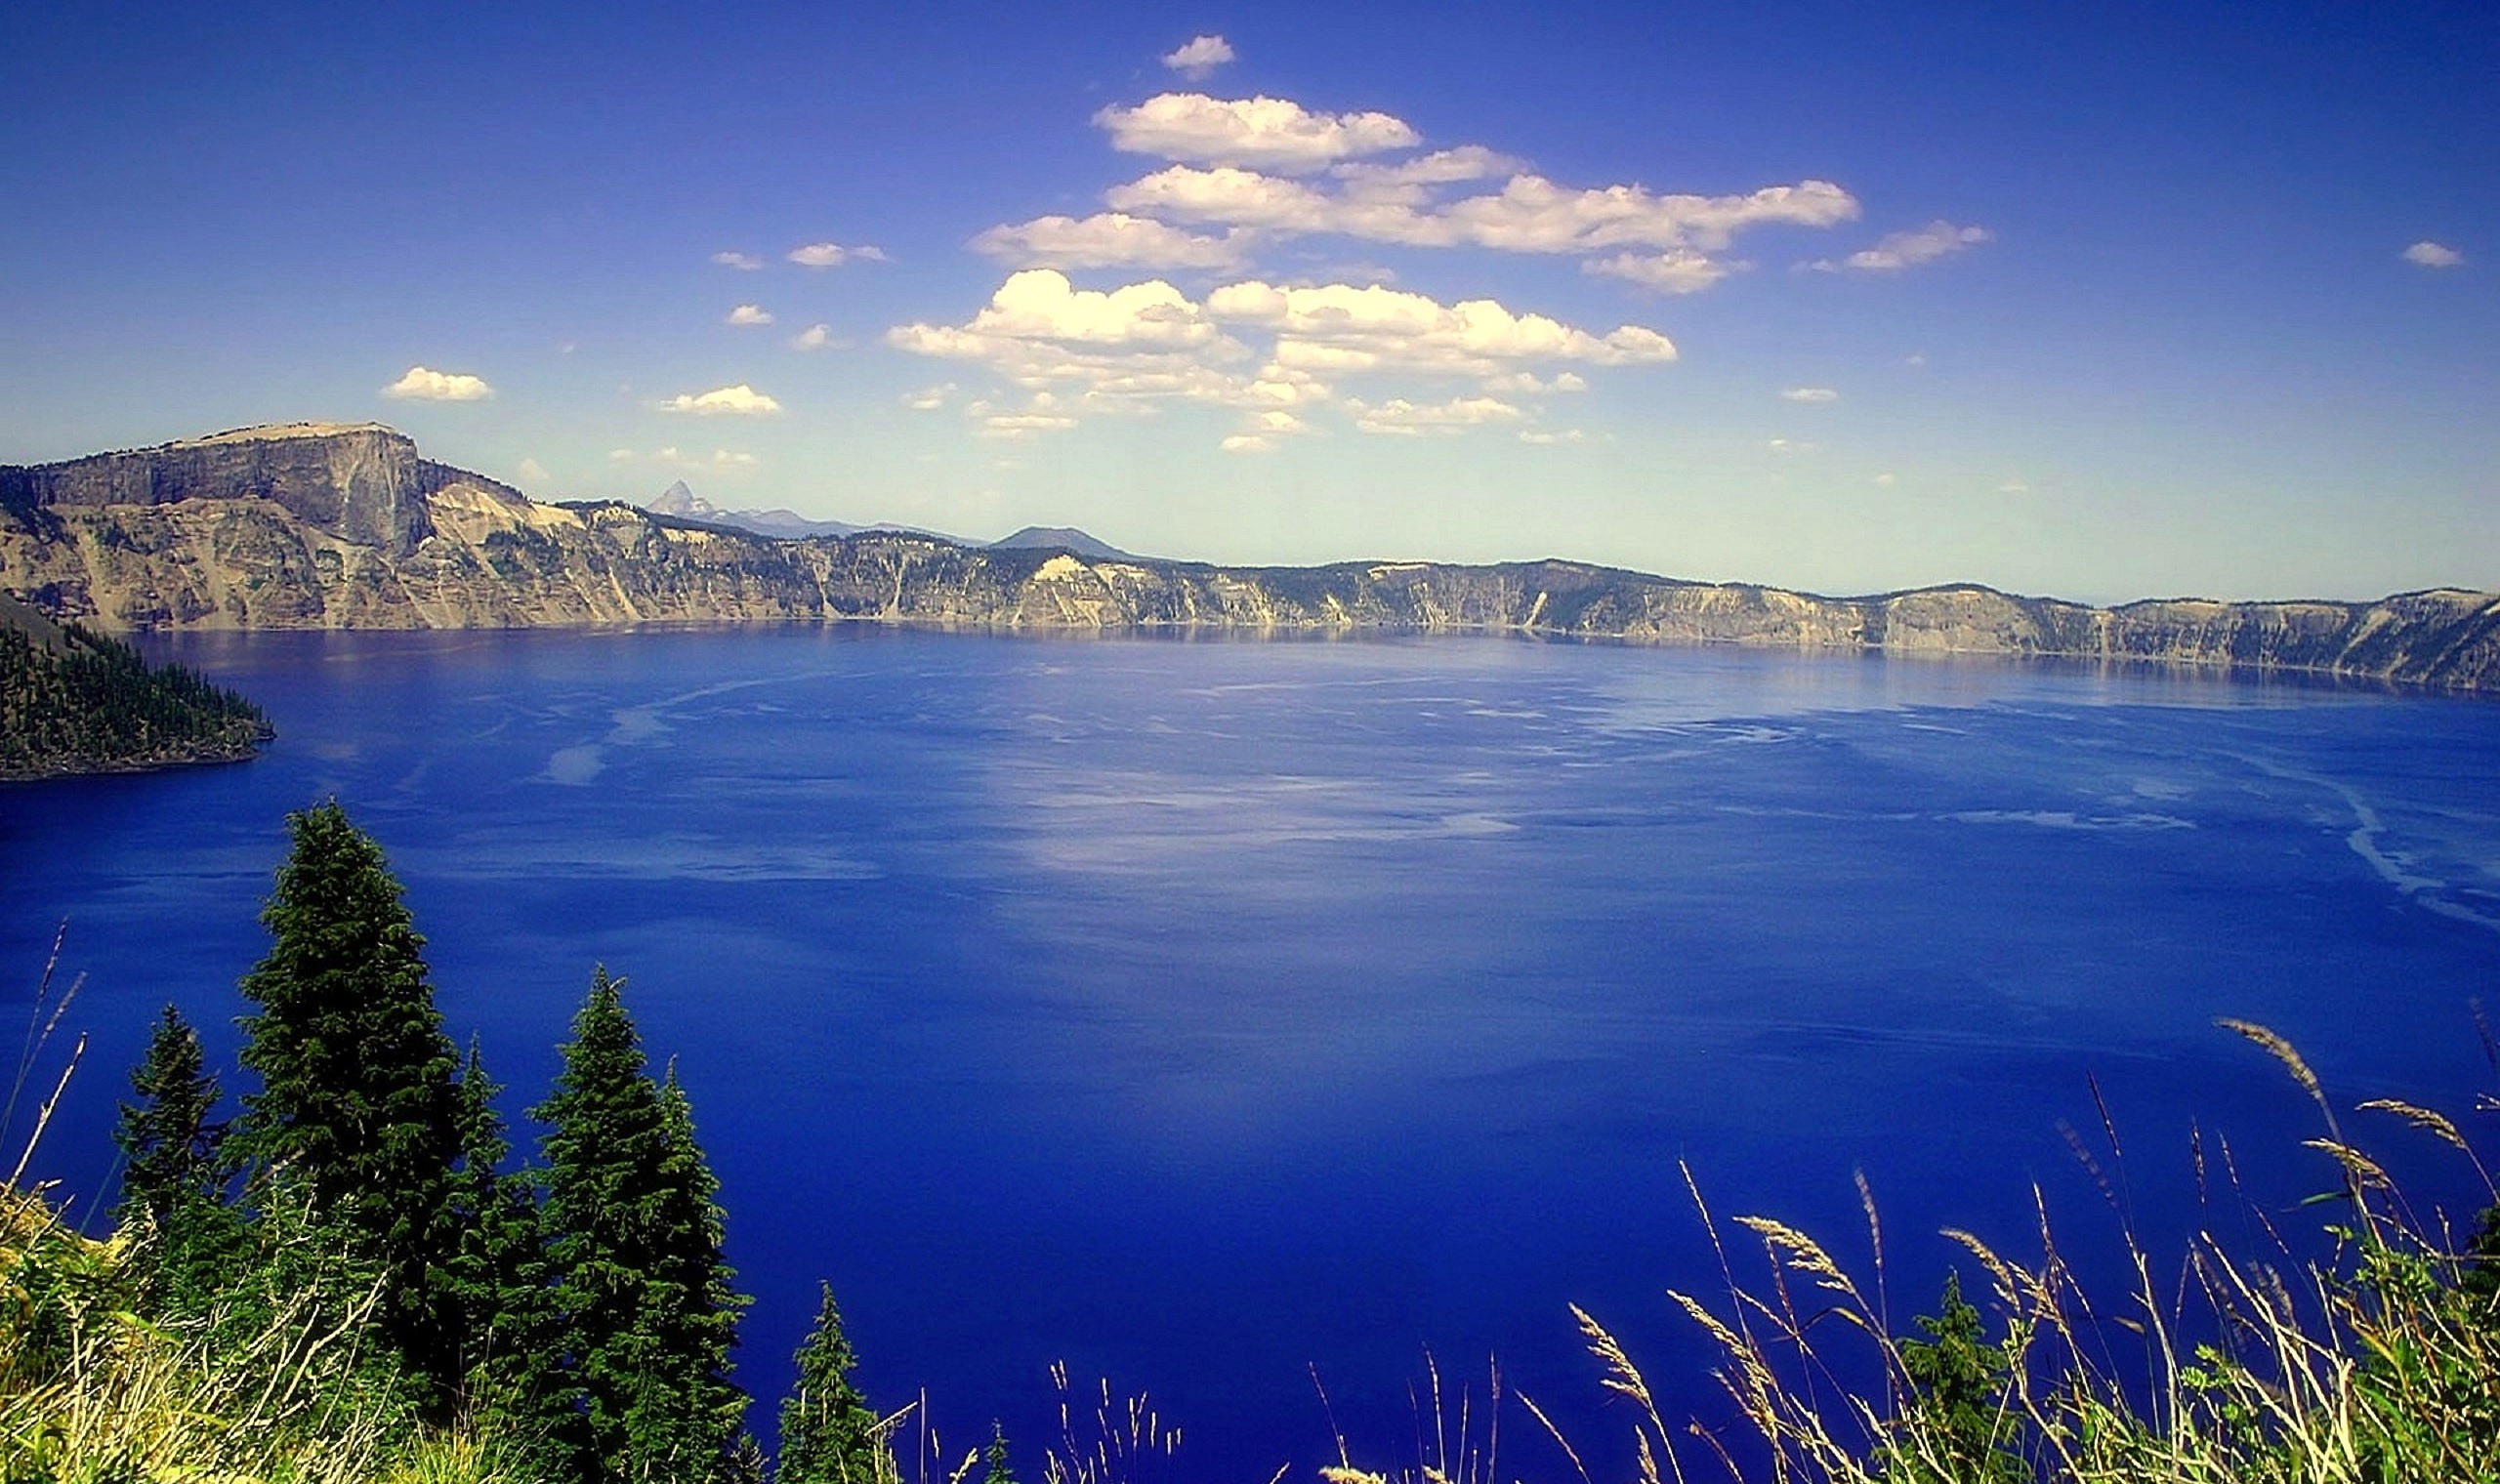 nature view wallpaper,body of water,sky,nature,lake,natural landscape